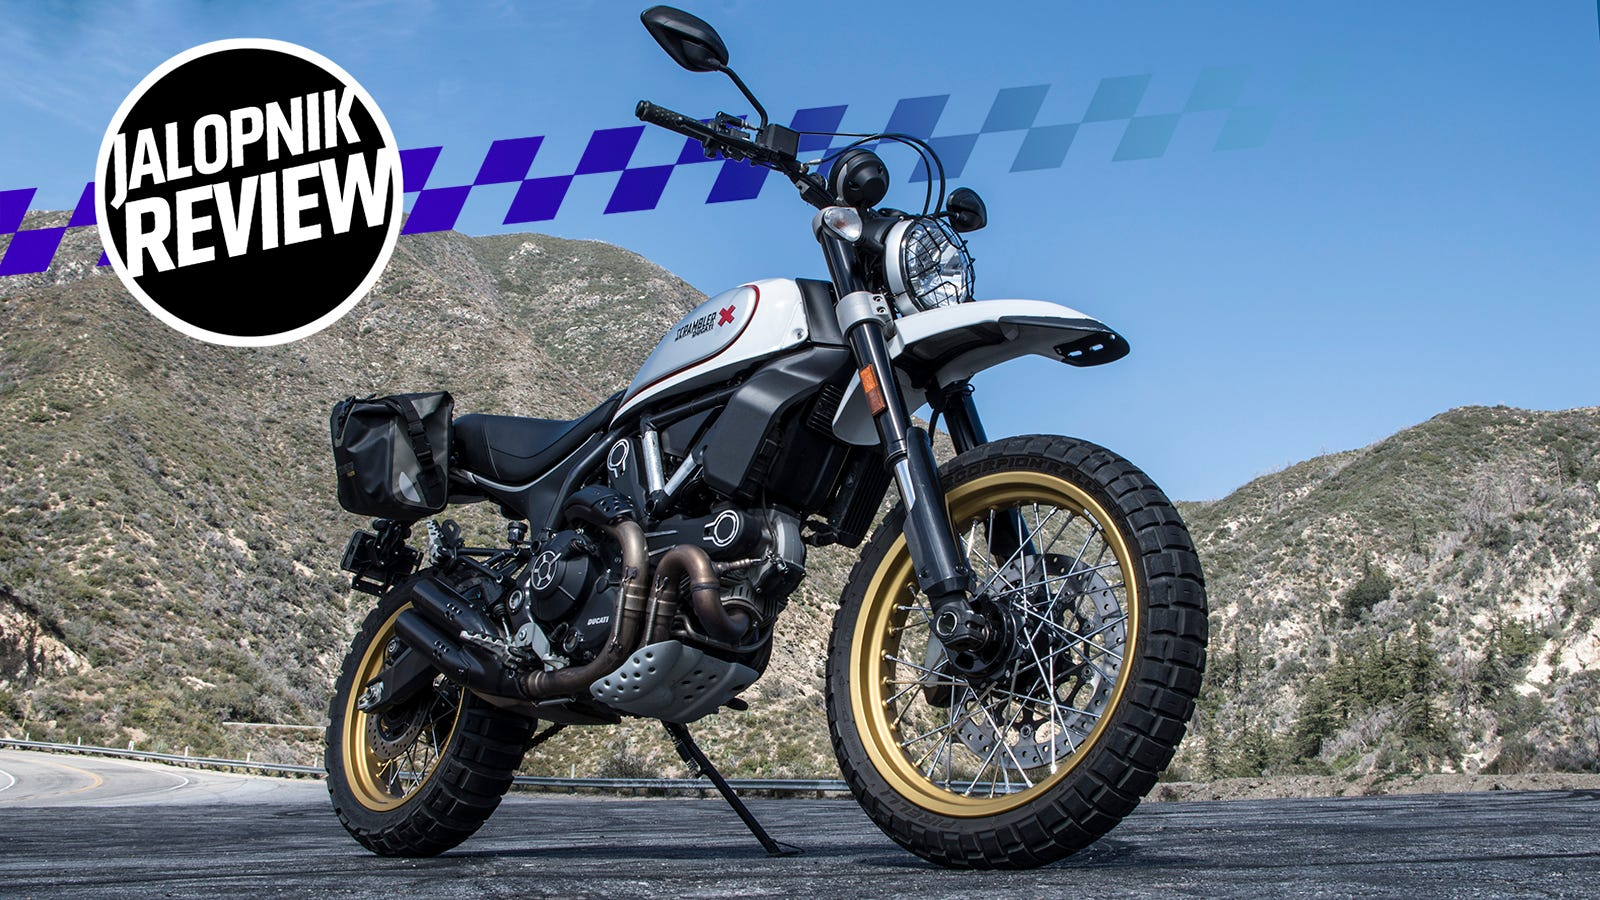 The Ducati Scrambler Desert Sled Is Fun To Ride But It's